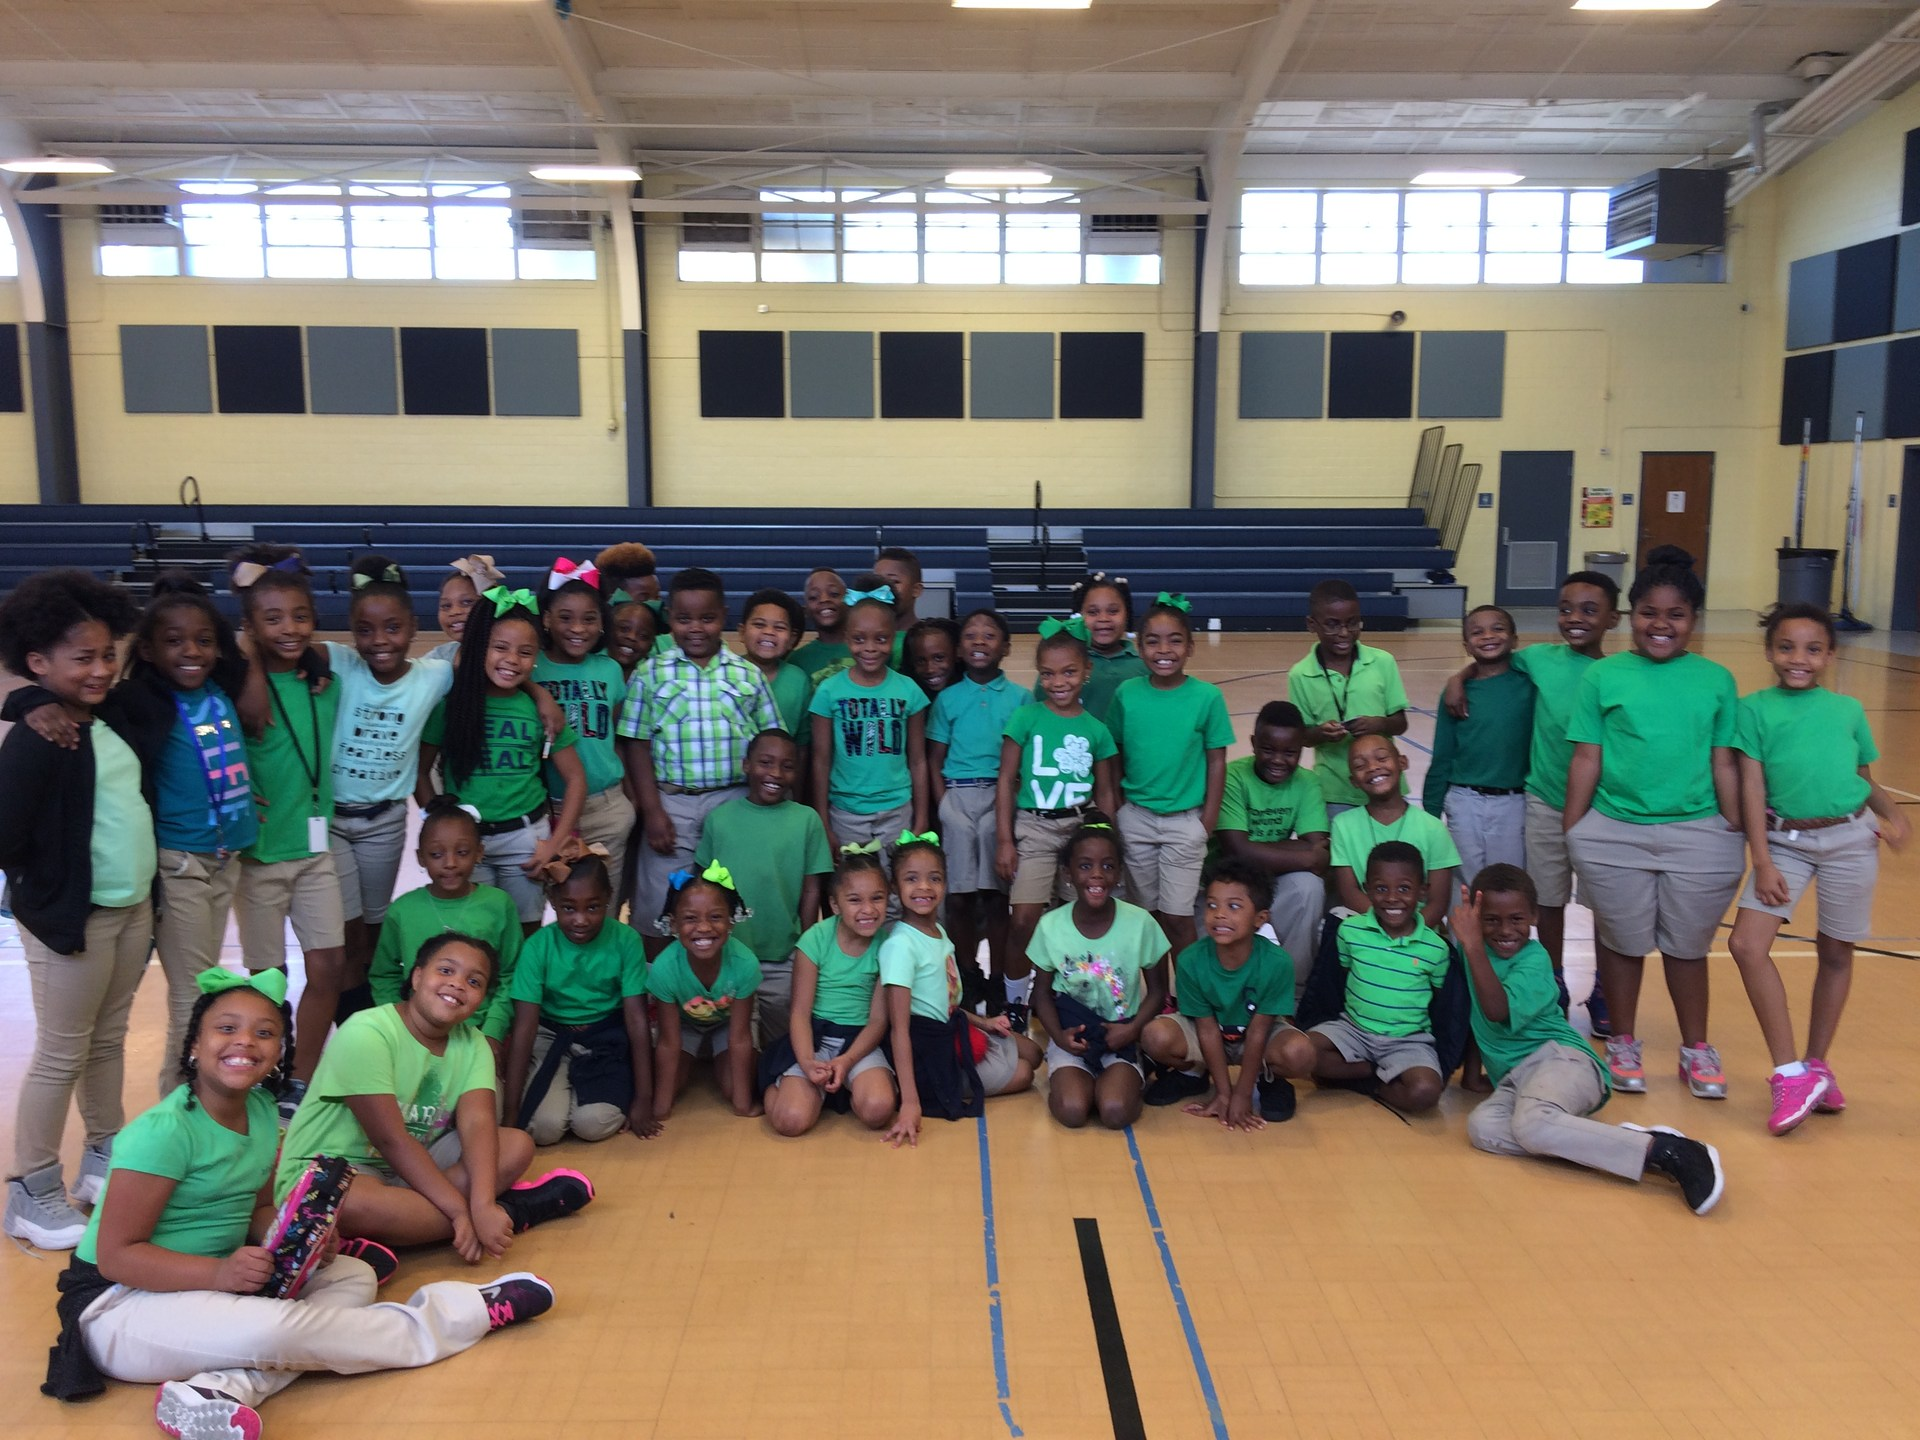 4-H week dress down 'Going Green with 4-H'